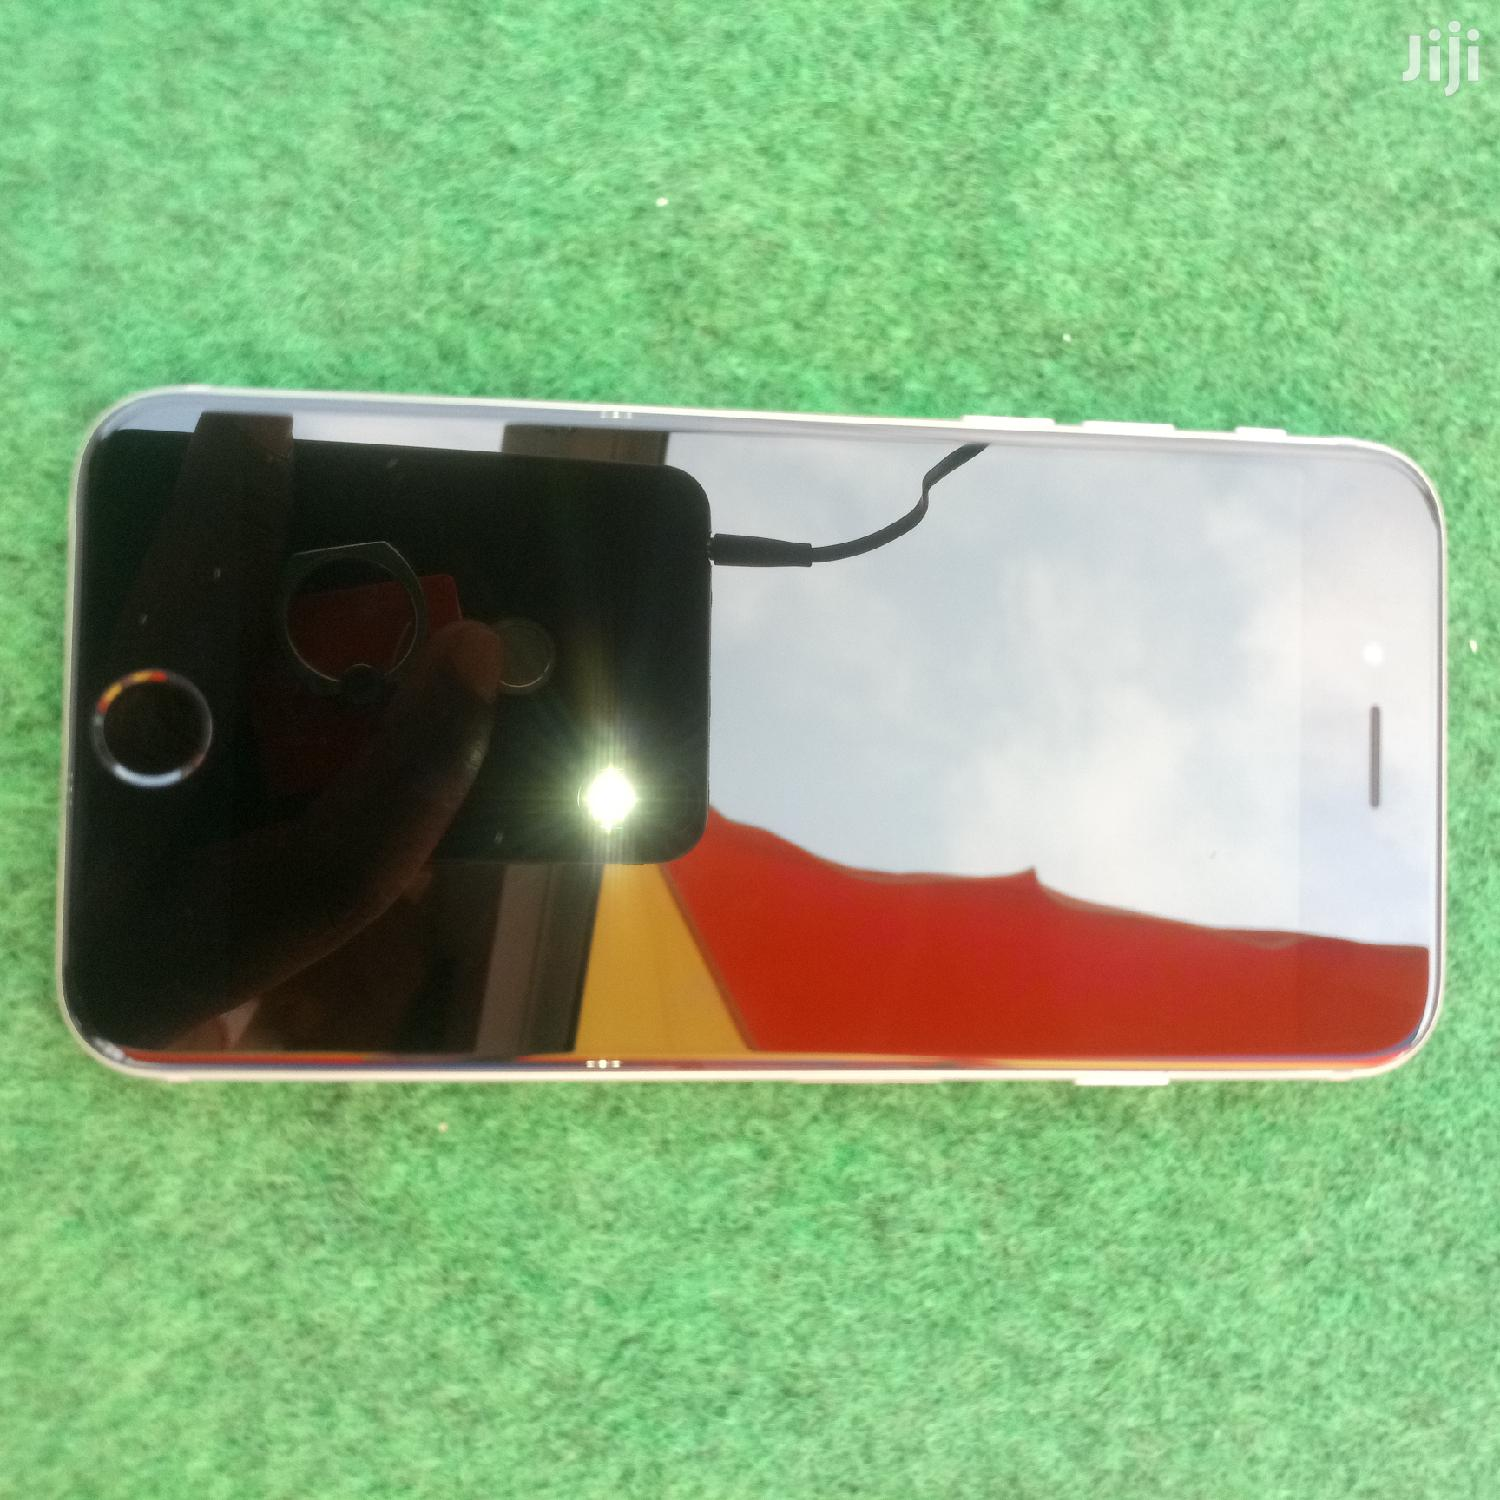 Apple iPhone 6 32 GB Silver | Mobile Phones for sale in Teshie-Nungua Estates, Greater Accra, Ghana